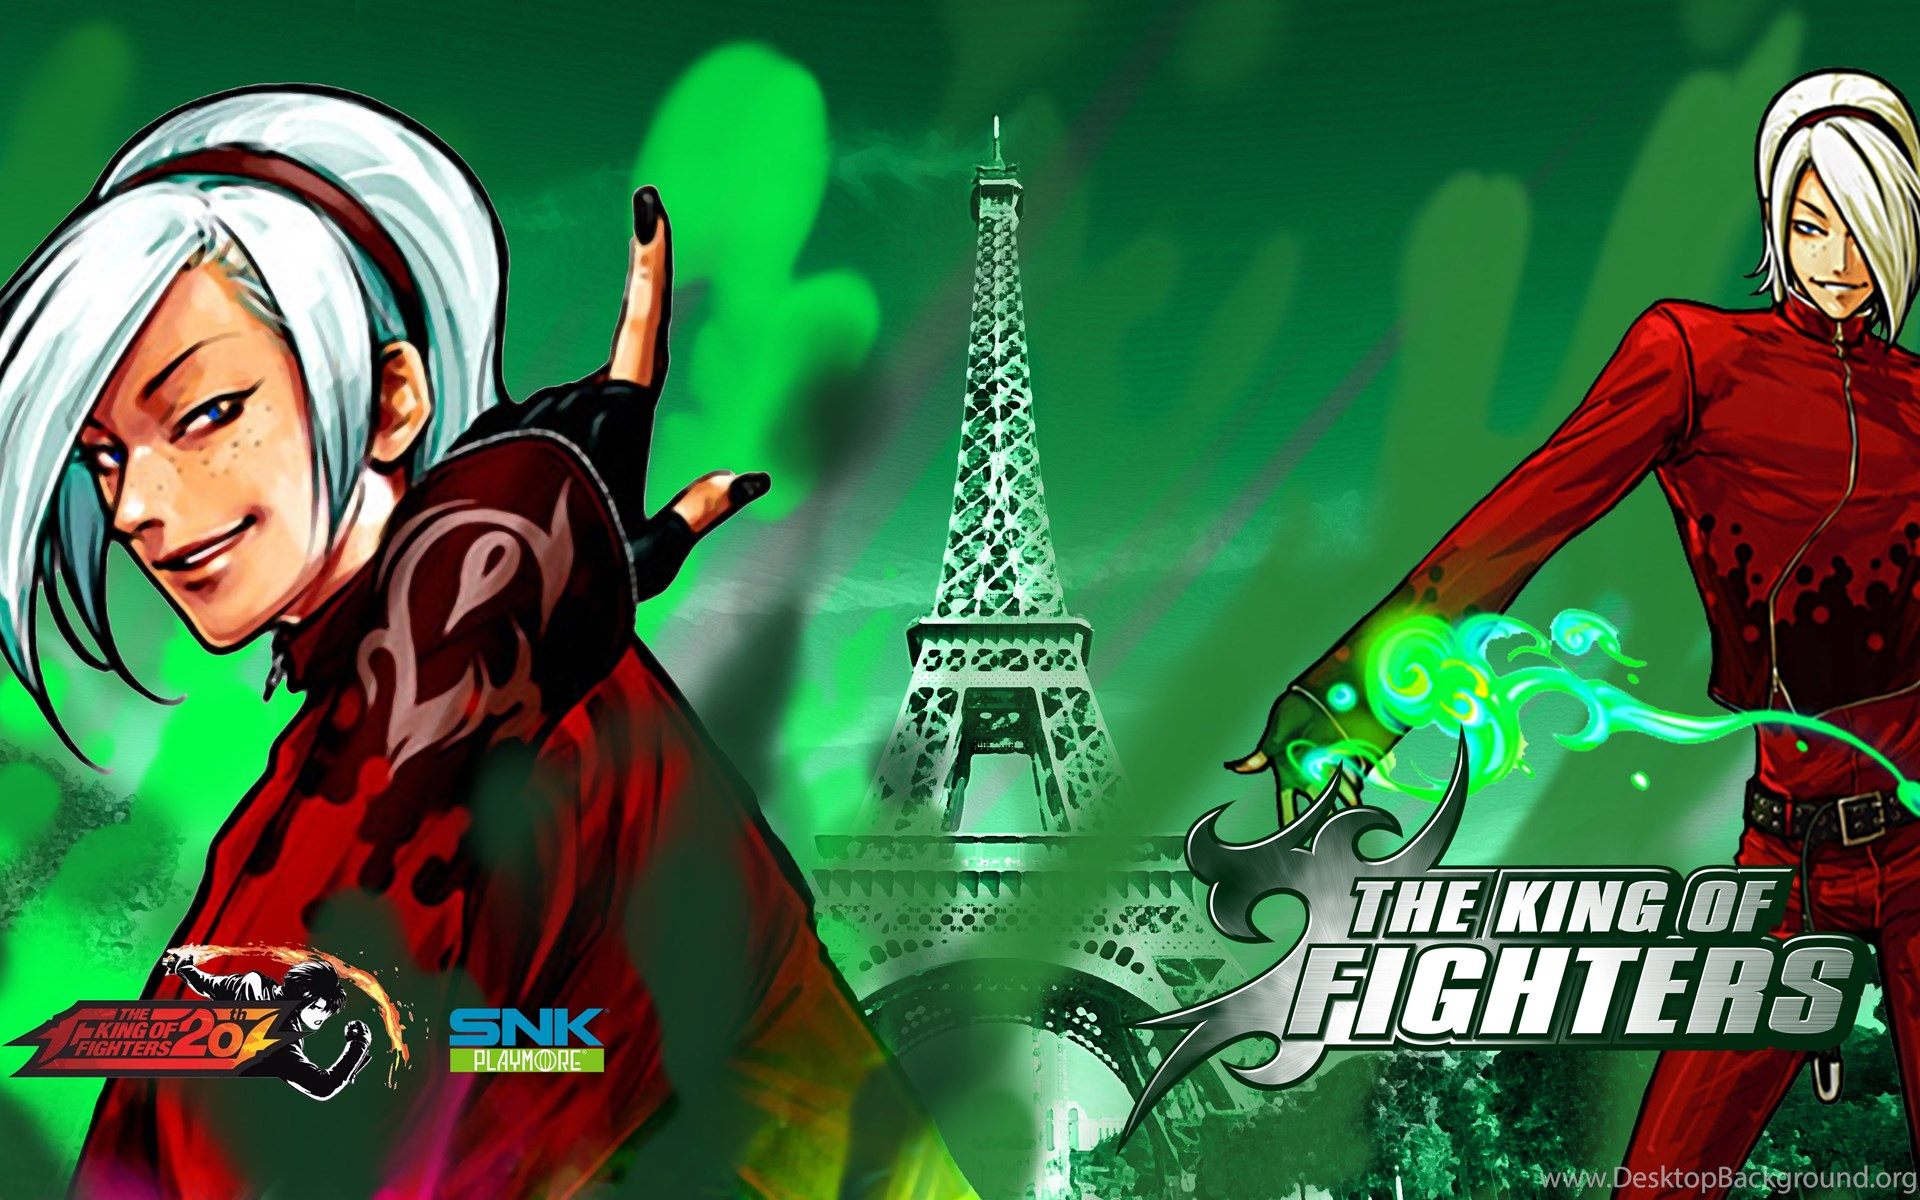 Free The King Of Fighters Ash Crimson Hd Wallpapers Desktop Background